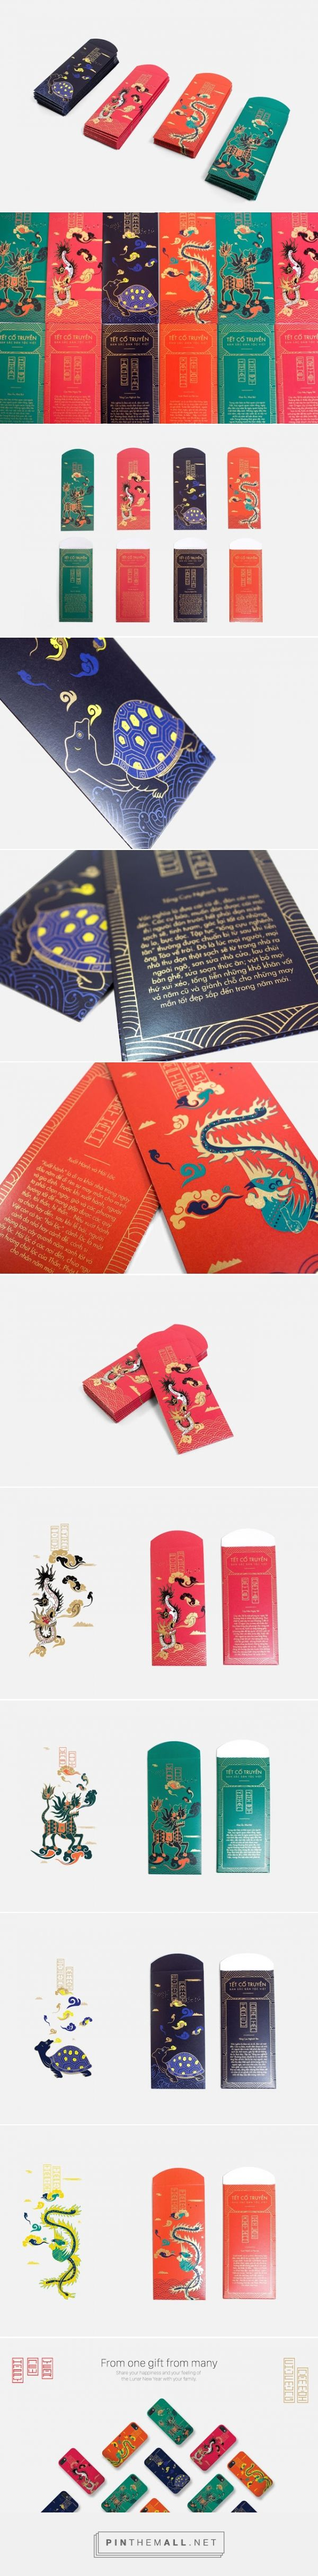 Red Envelope for Lunar New Year - Packaging of the World - Creative Package Design Gallery - http://www.packagingoftheworld.com/2016/02/red-envelope-for-lunar-new-year.html